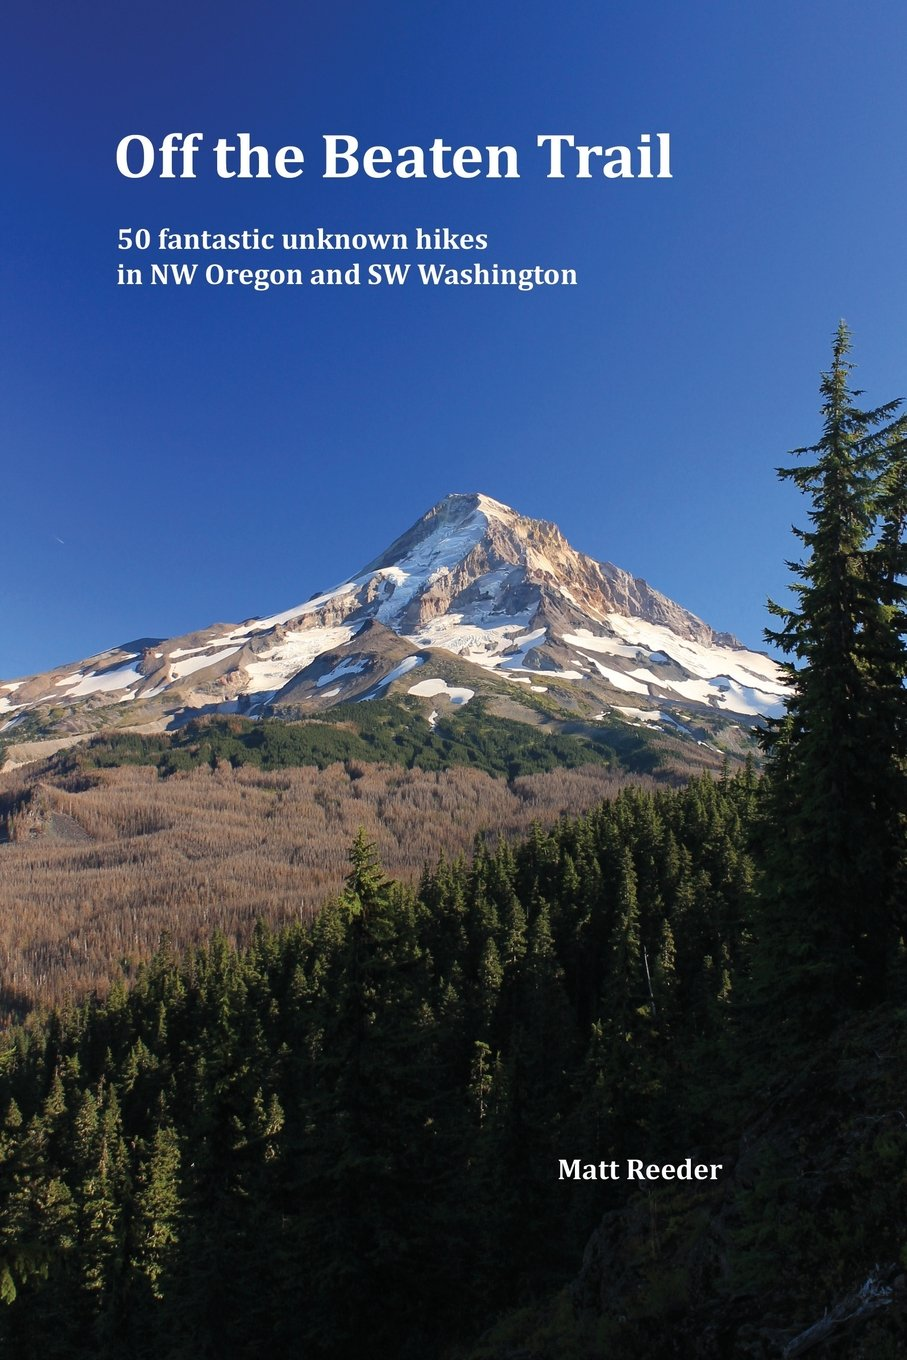 Download Off the Beaten Trail: 50 fantastic unknown hikes in NW Oregon and SW Washington PDF